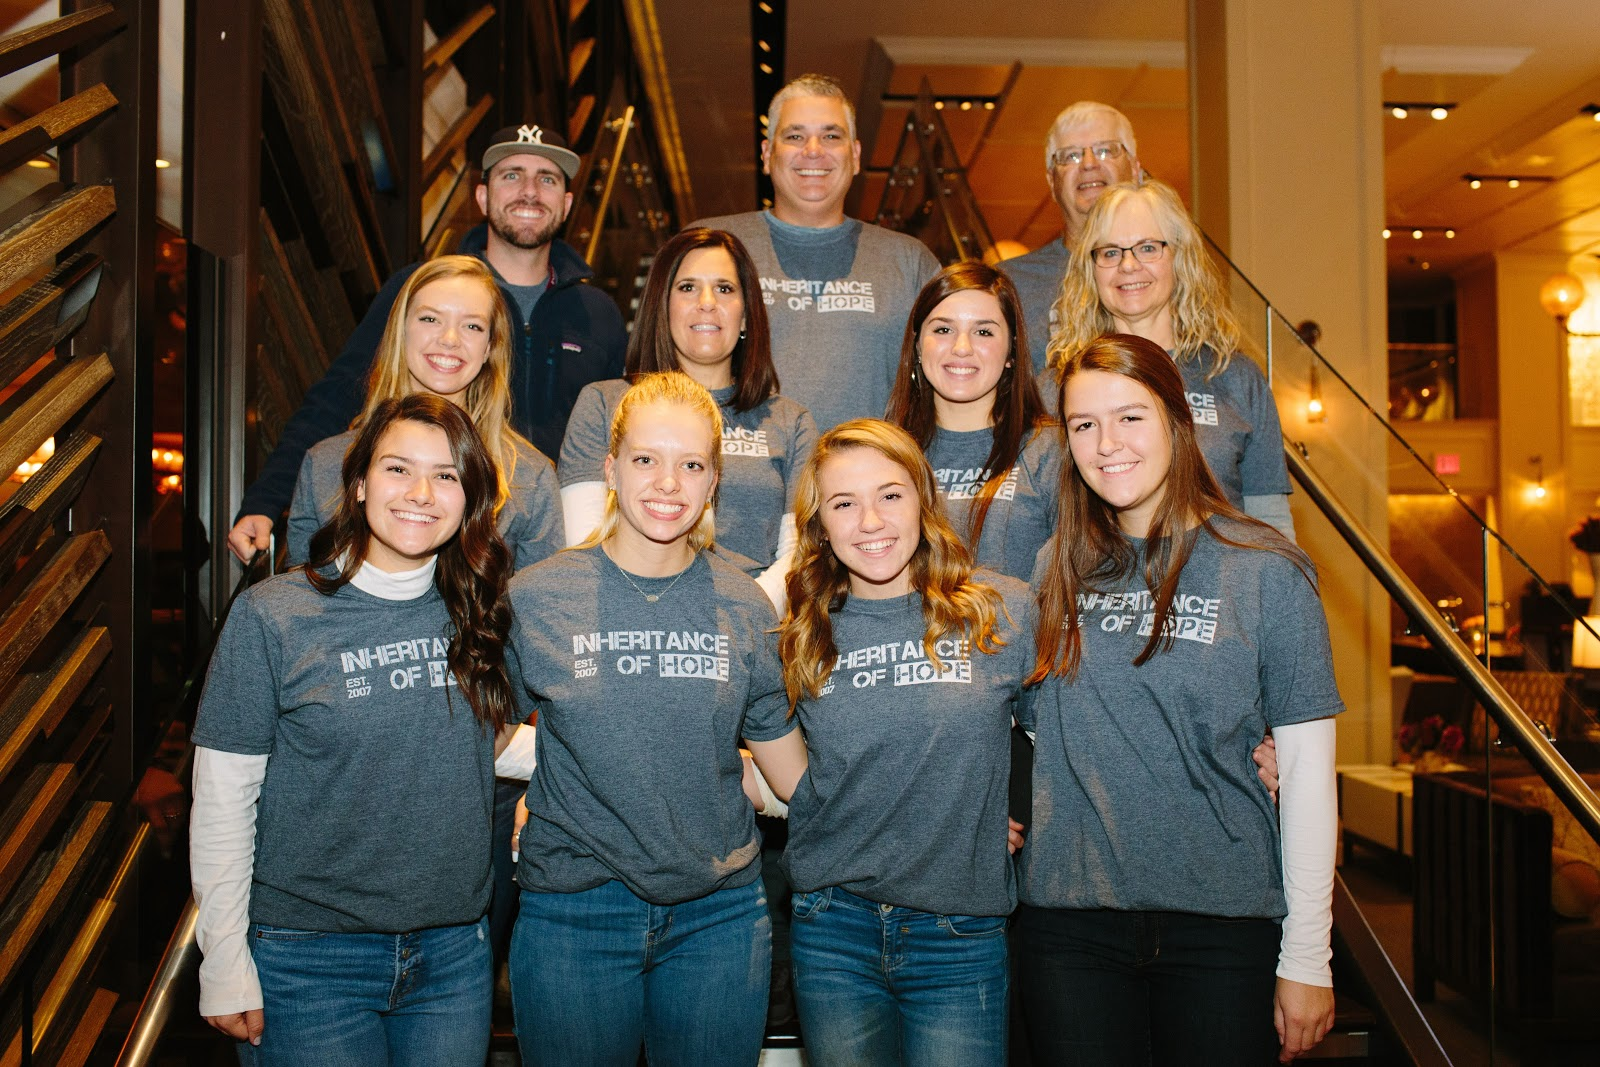 IoH Welcomes 11 new volunteers in New York City!